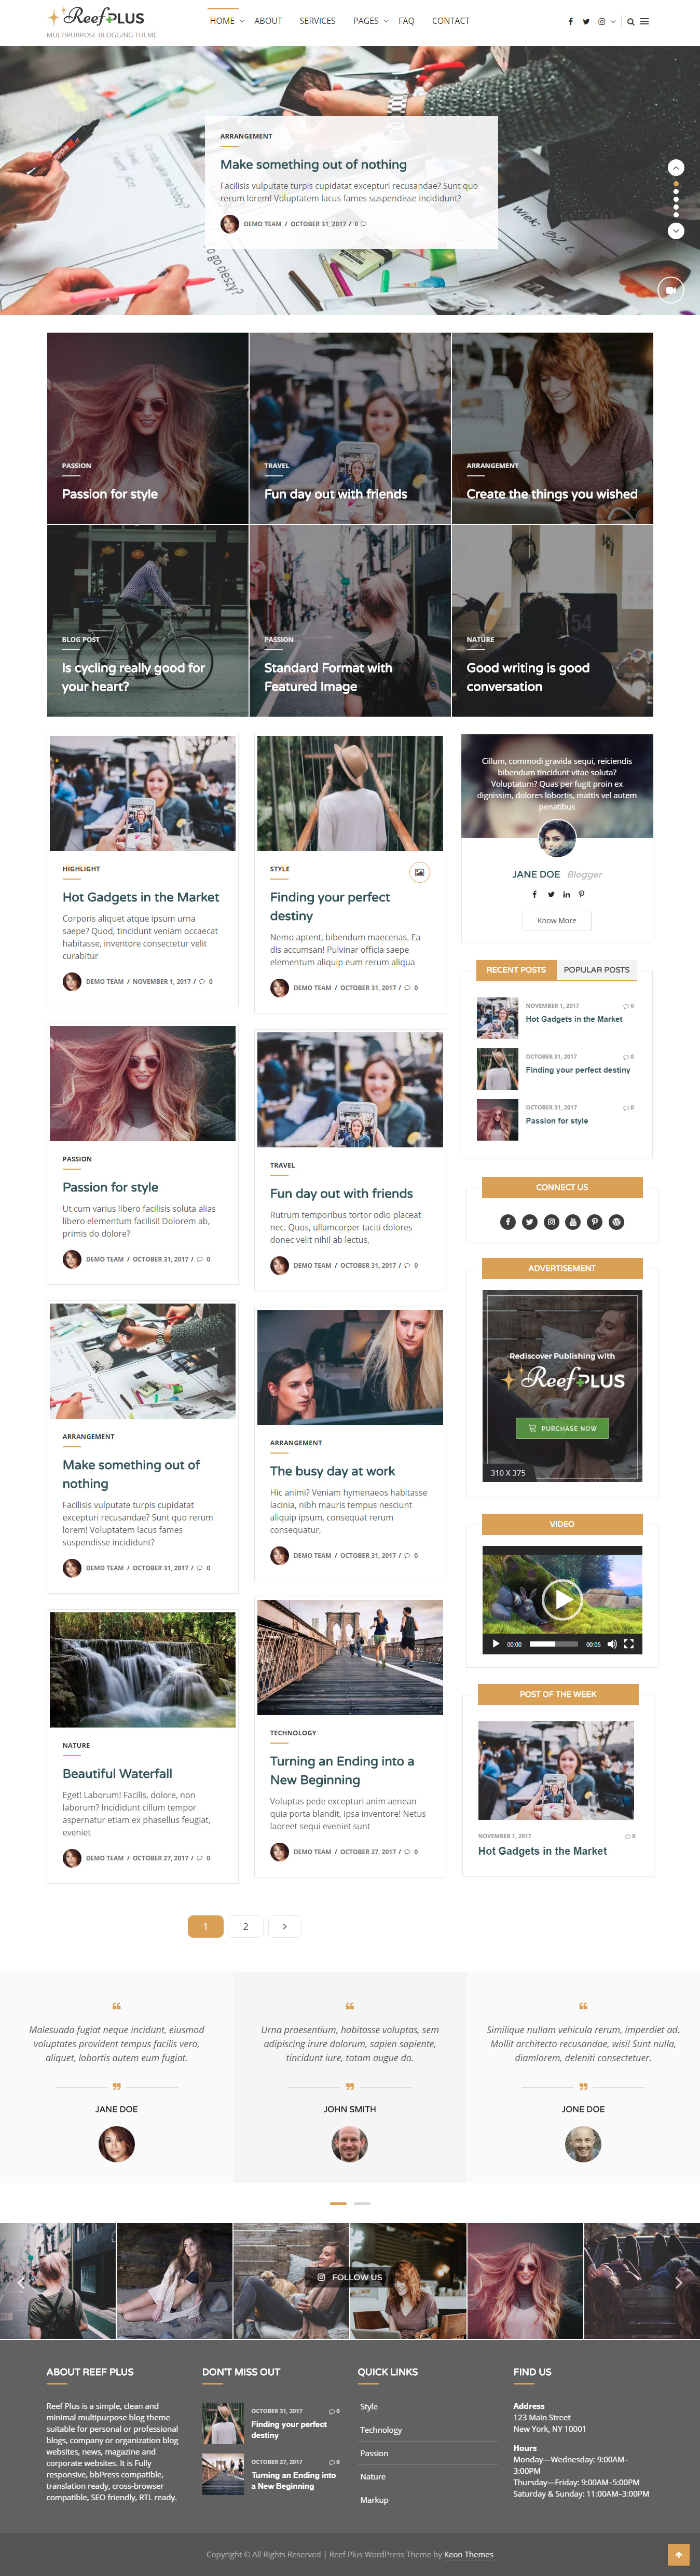 Reef Plus – WordPress Blog Theme